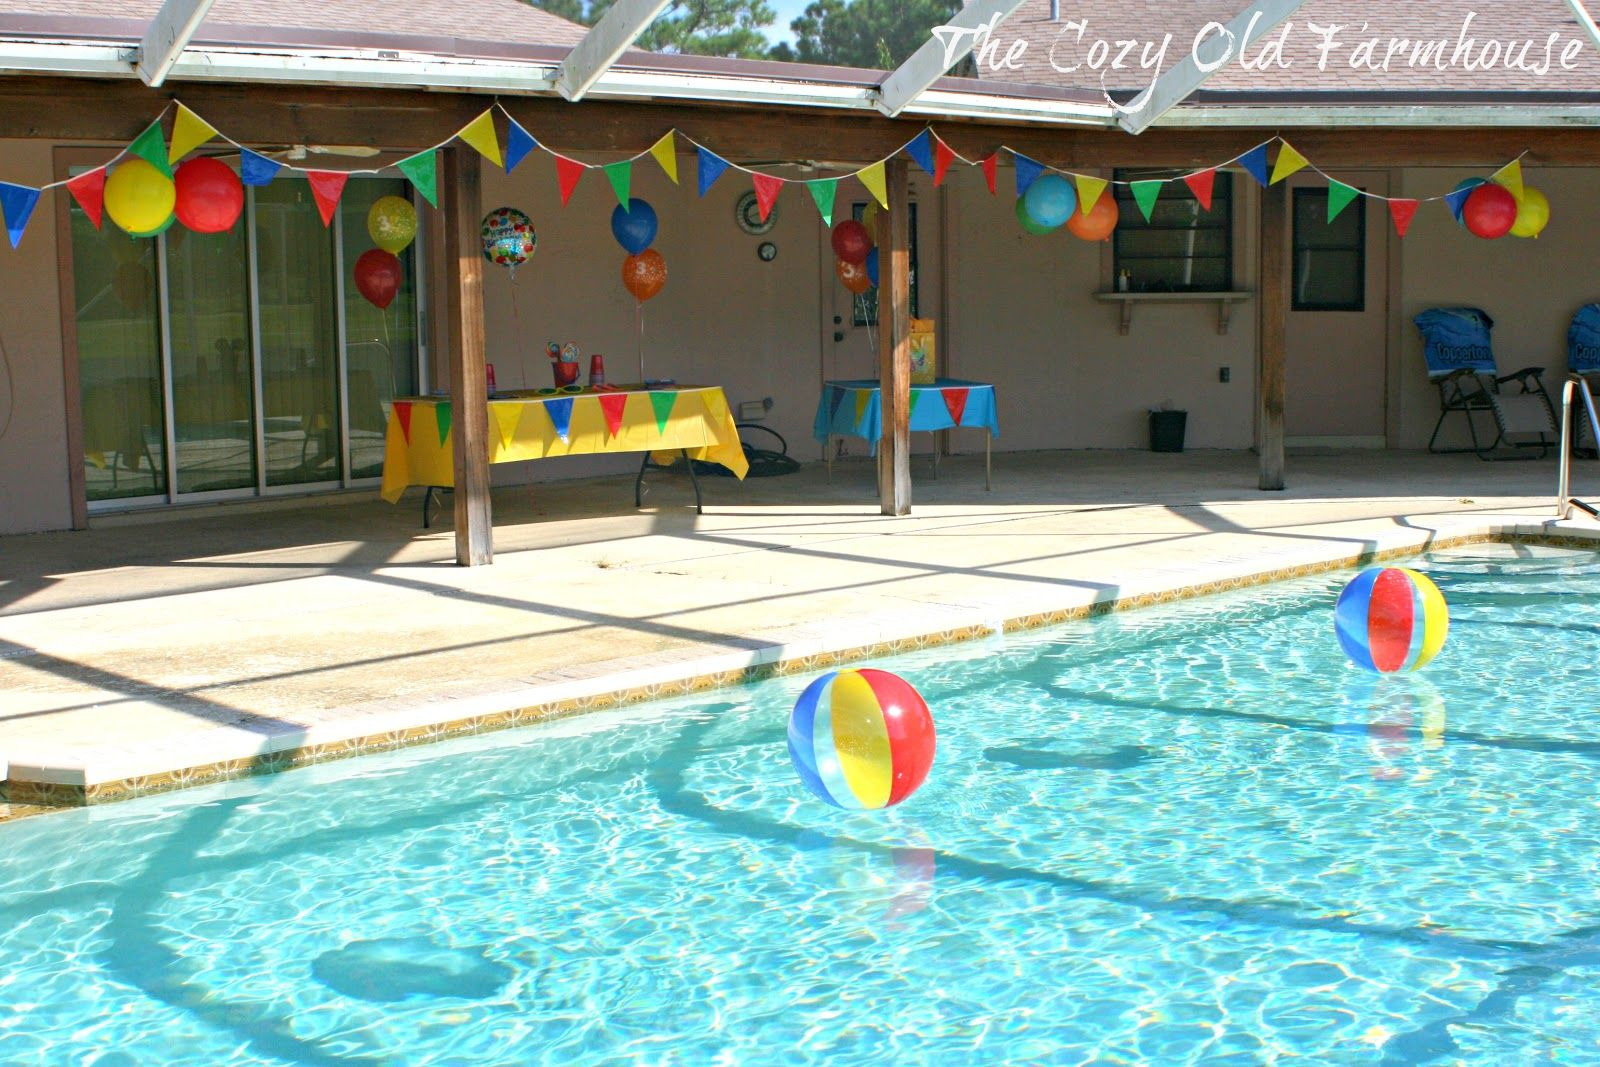 Pool party decorations to make all things sammy - How to make a pool party ...